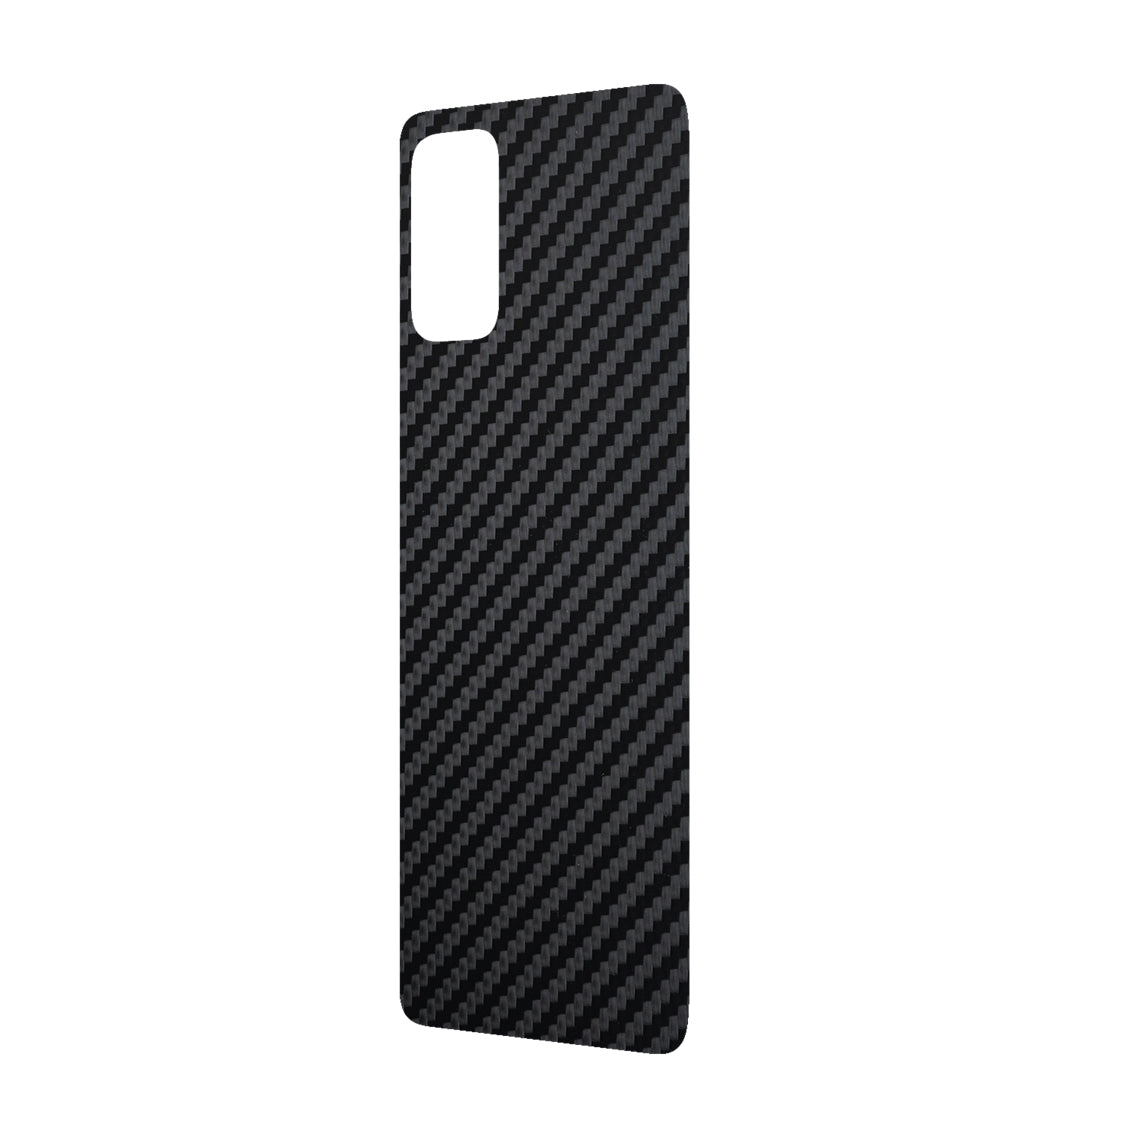 RhinoShield Impact Skin For Samsung S20 Plus - Carbon Fiber - Macintosh Addict